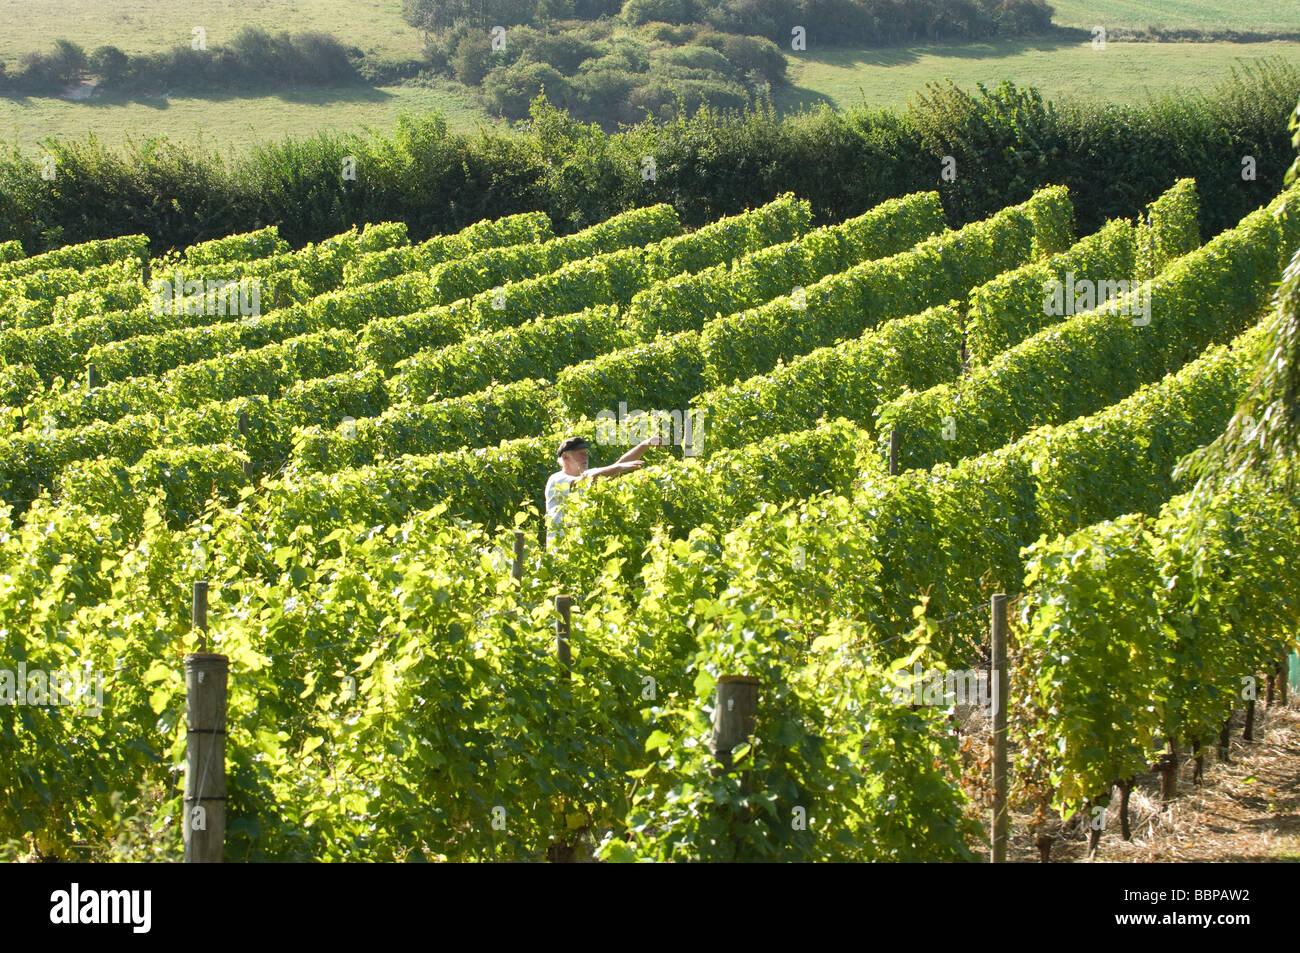 Peter Hall tending his vines at Breaky Bottom Vineyard, Rodmell, Near Lewes, Sussex, England, UK Britain - Stock Image